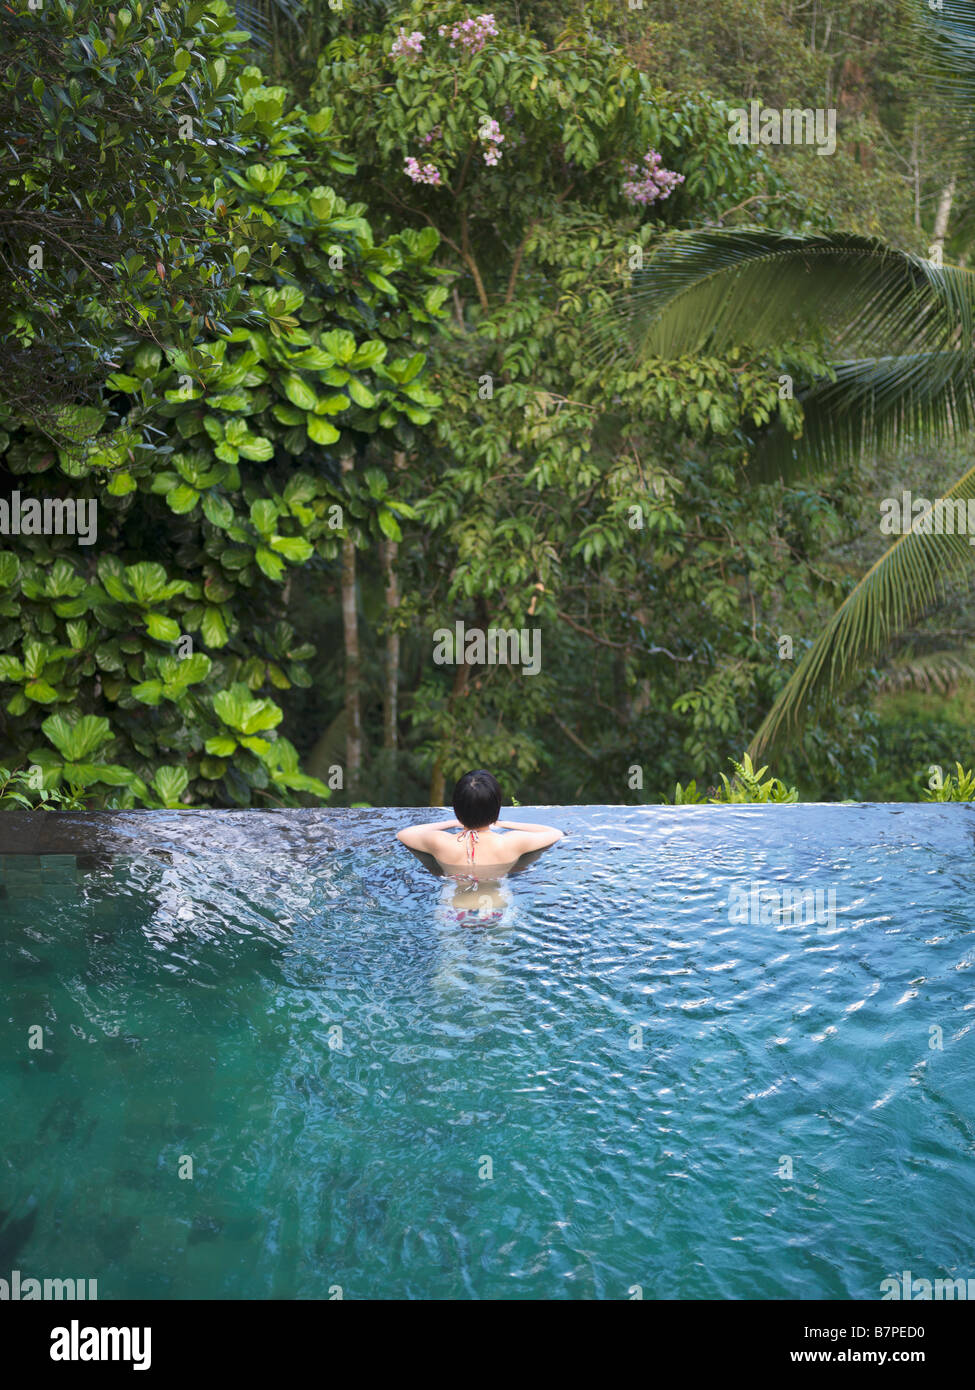 Woman Bathing In An Infinity Pool Surrounded By A Lush